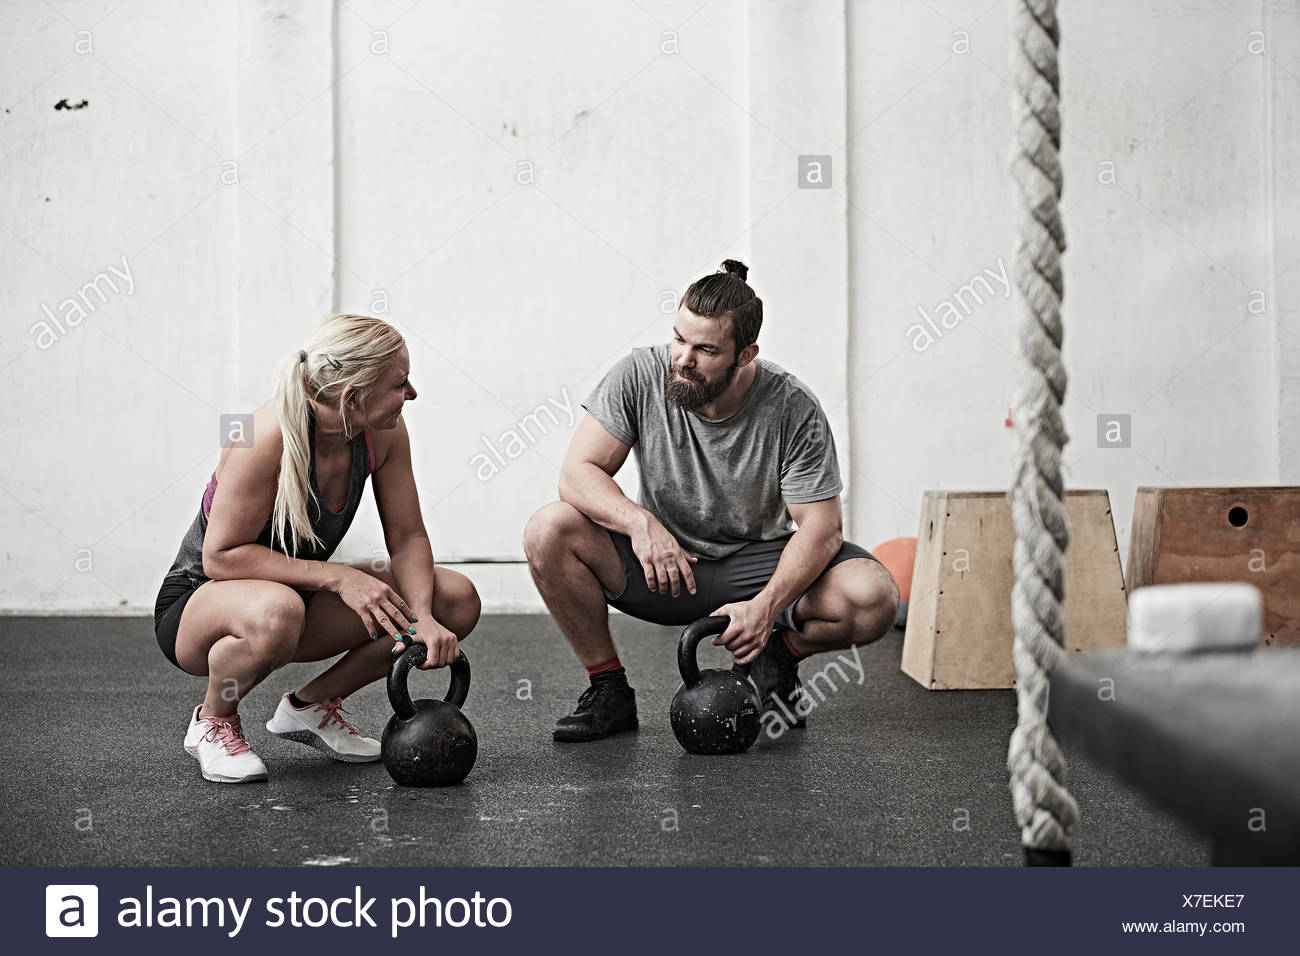 Couple with kettlebells in cross training gym - Stock Image